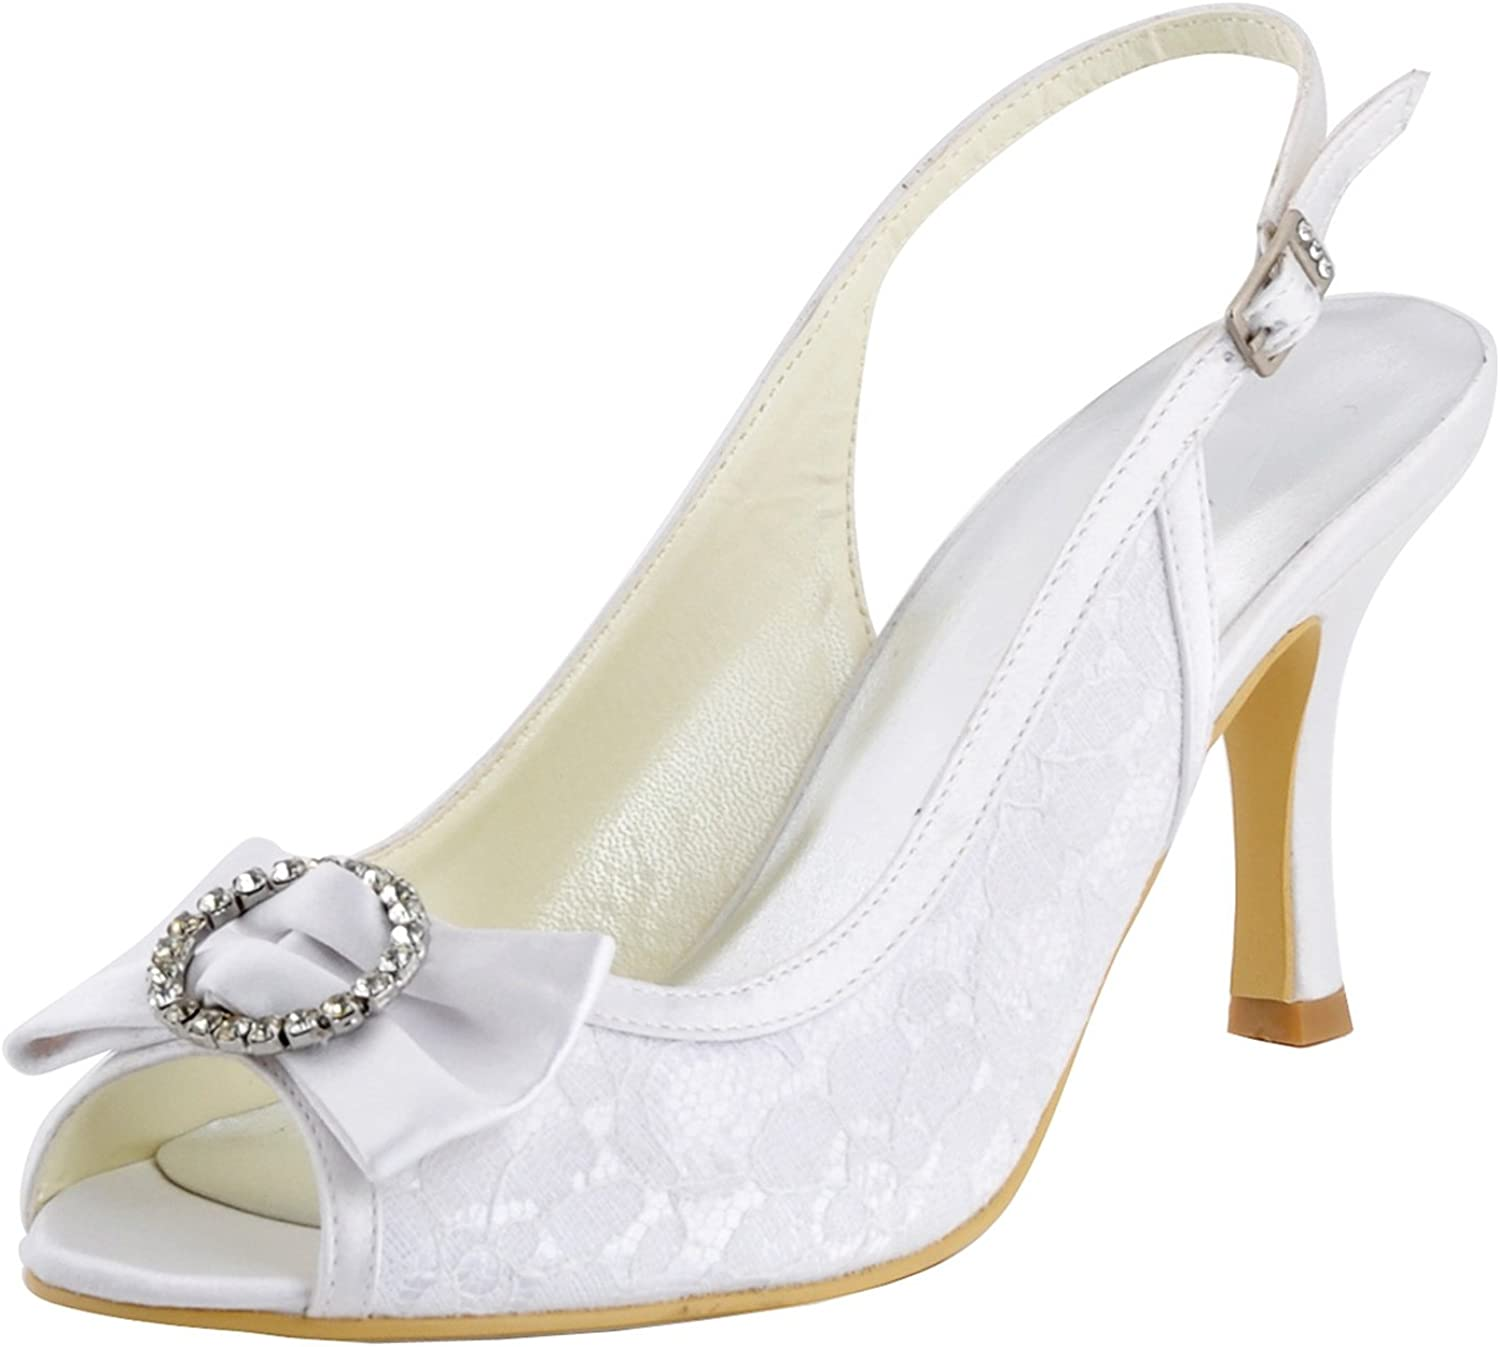 Minishion Girls Womens Slingback Bows Lace Bridal Wedding Sandals Formal Party shoes